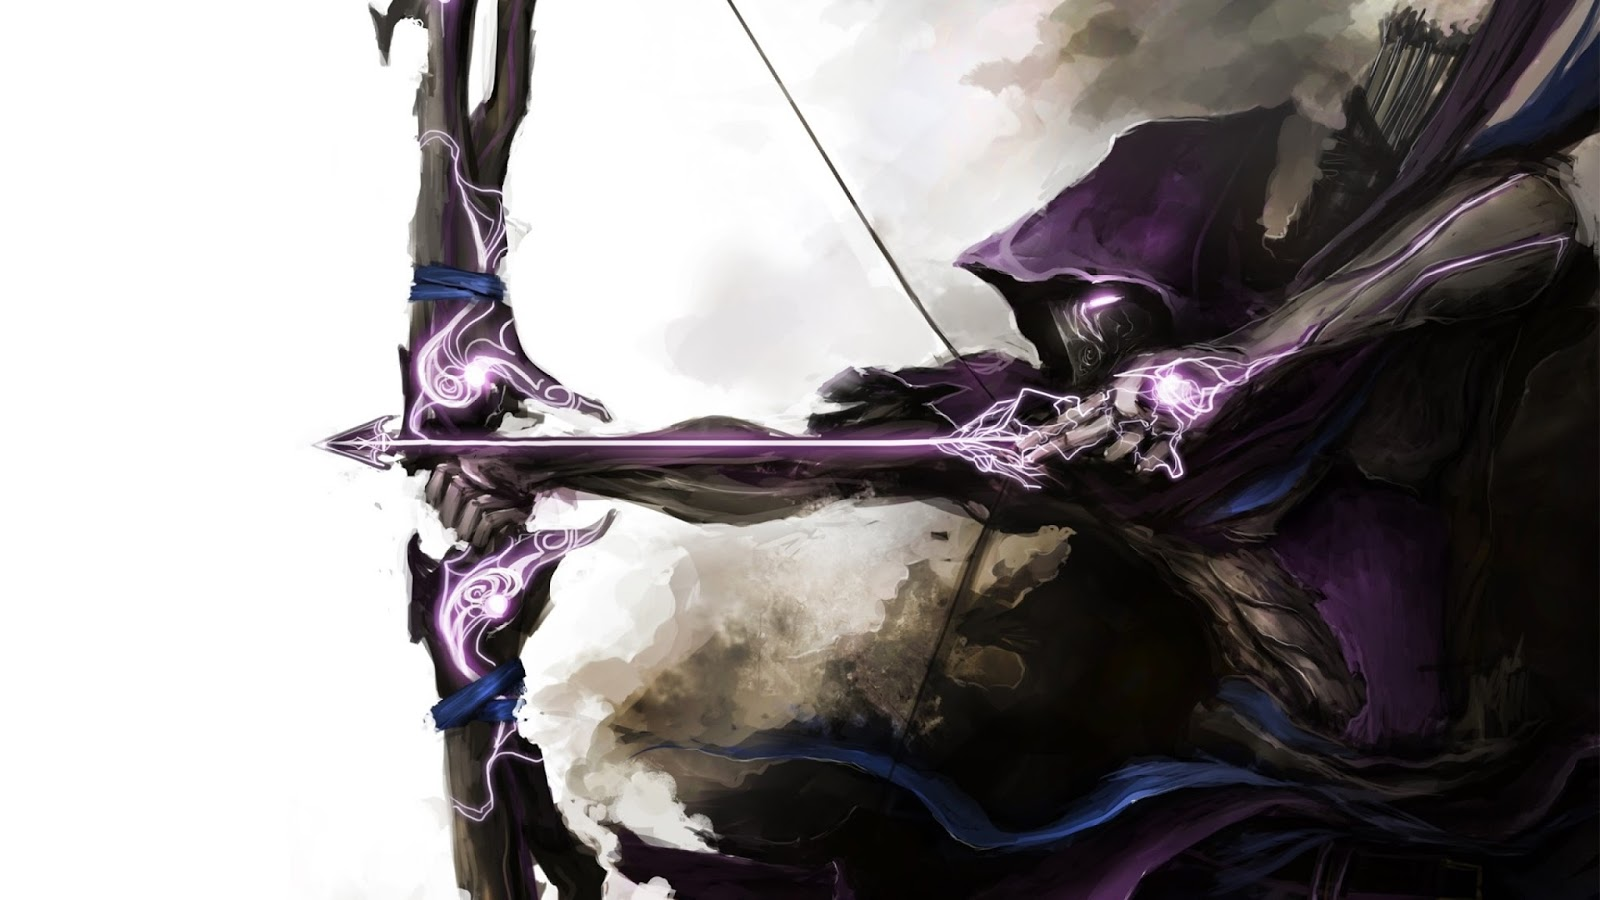 Great Wallpaper Marvel Hawkeye - weapons+digital+art+artwork+the+avengers+hawkeye+arrows+marvel+bow+weapon+thedurrrrian+deviant+art+HD+Wallpaper+Backgrounds+Image+Photo+Picture  Photograph_121024.jpg